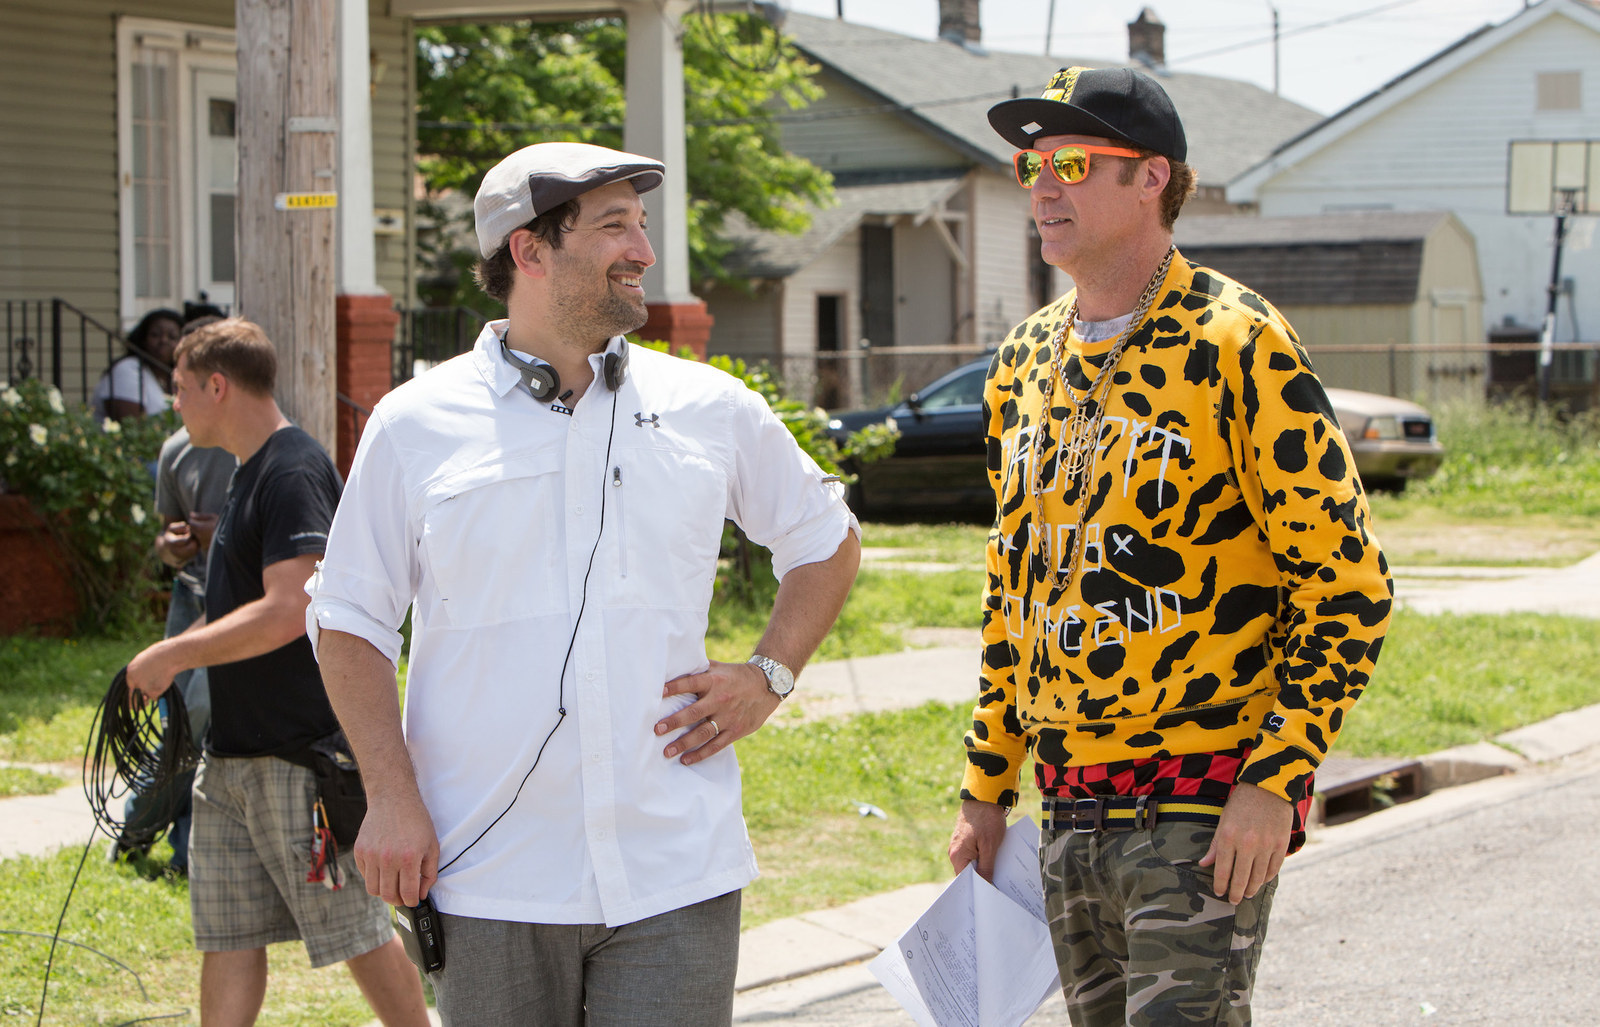 """How Racism And Homophobia Are Used For Comedy In """"Get Hard"""""""